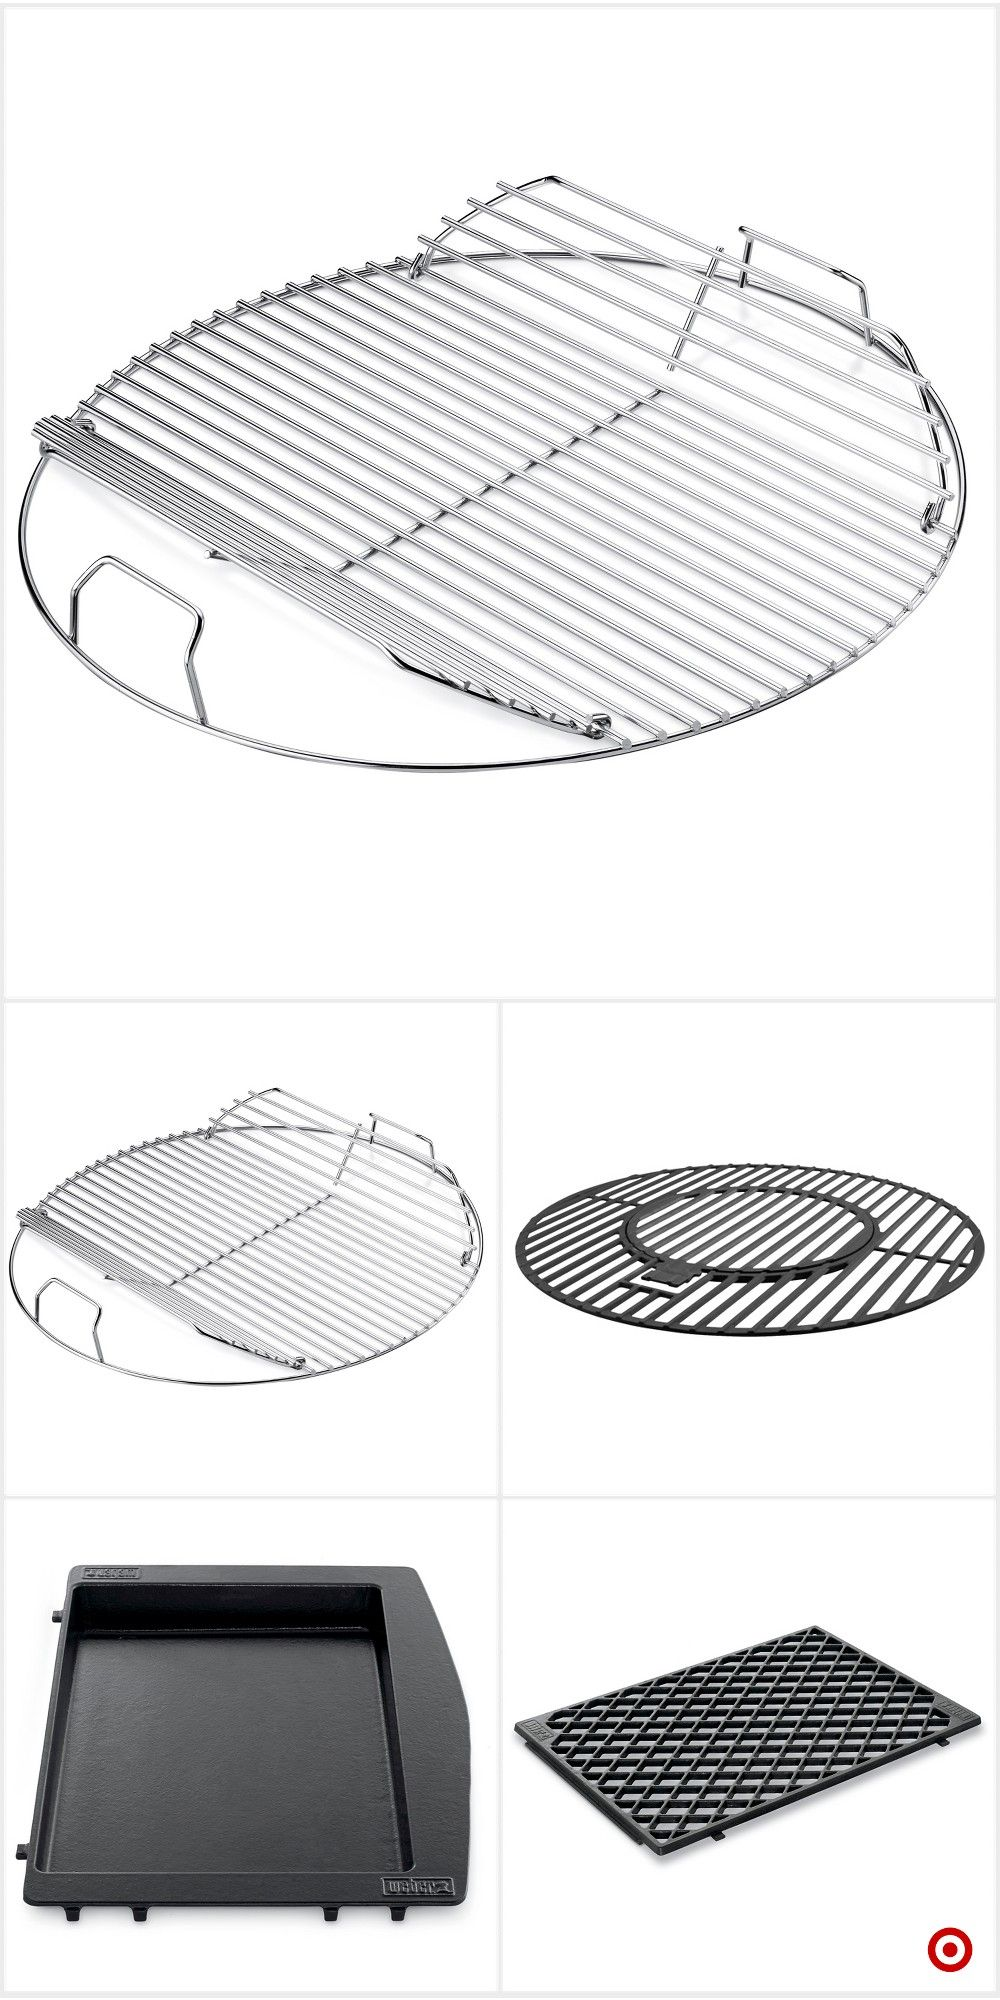 Luggage Rack Target Classy Shop Target For Grill Grate You Will Love At Great Low Pricesfree Design Decoration